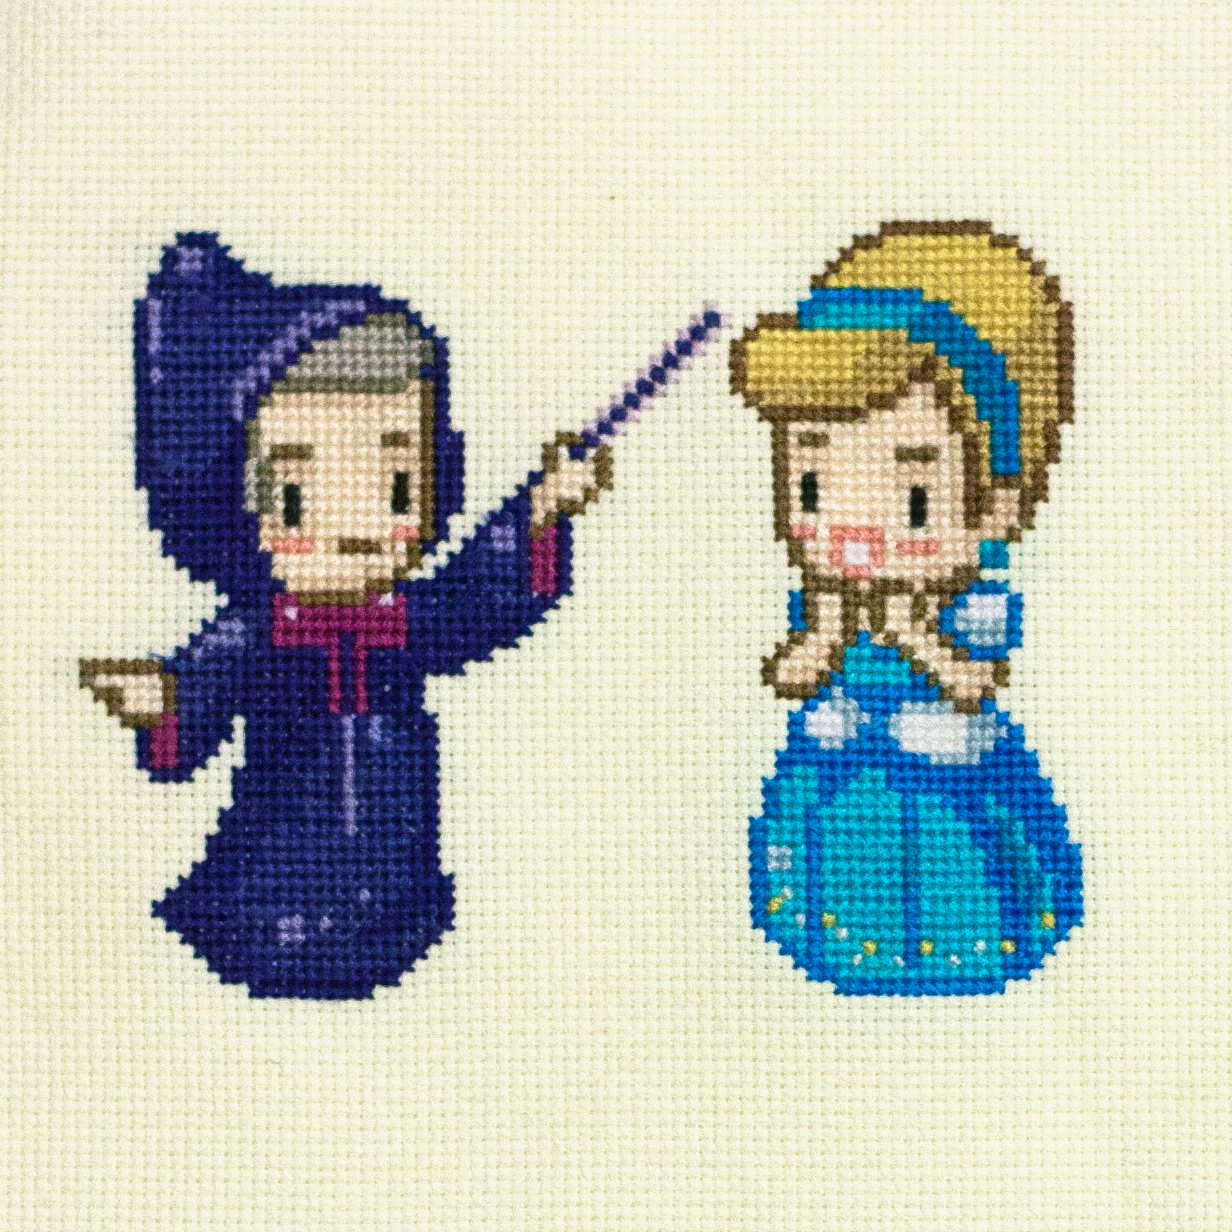 I Am Luna Sol How To Make Cross Stitch Patterns From